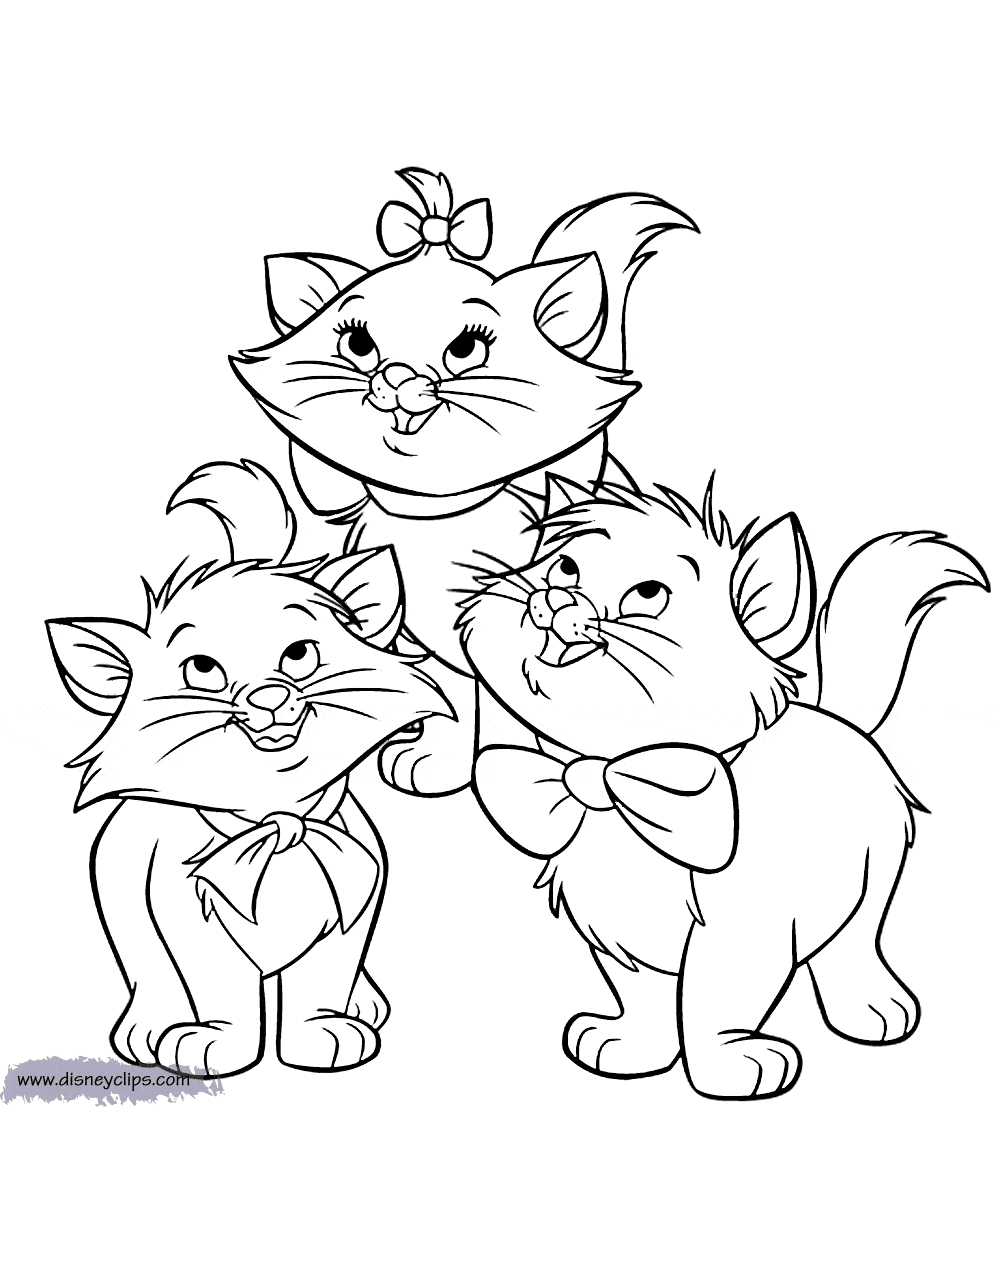 aristocats coloring pages - aristocatscolor